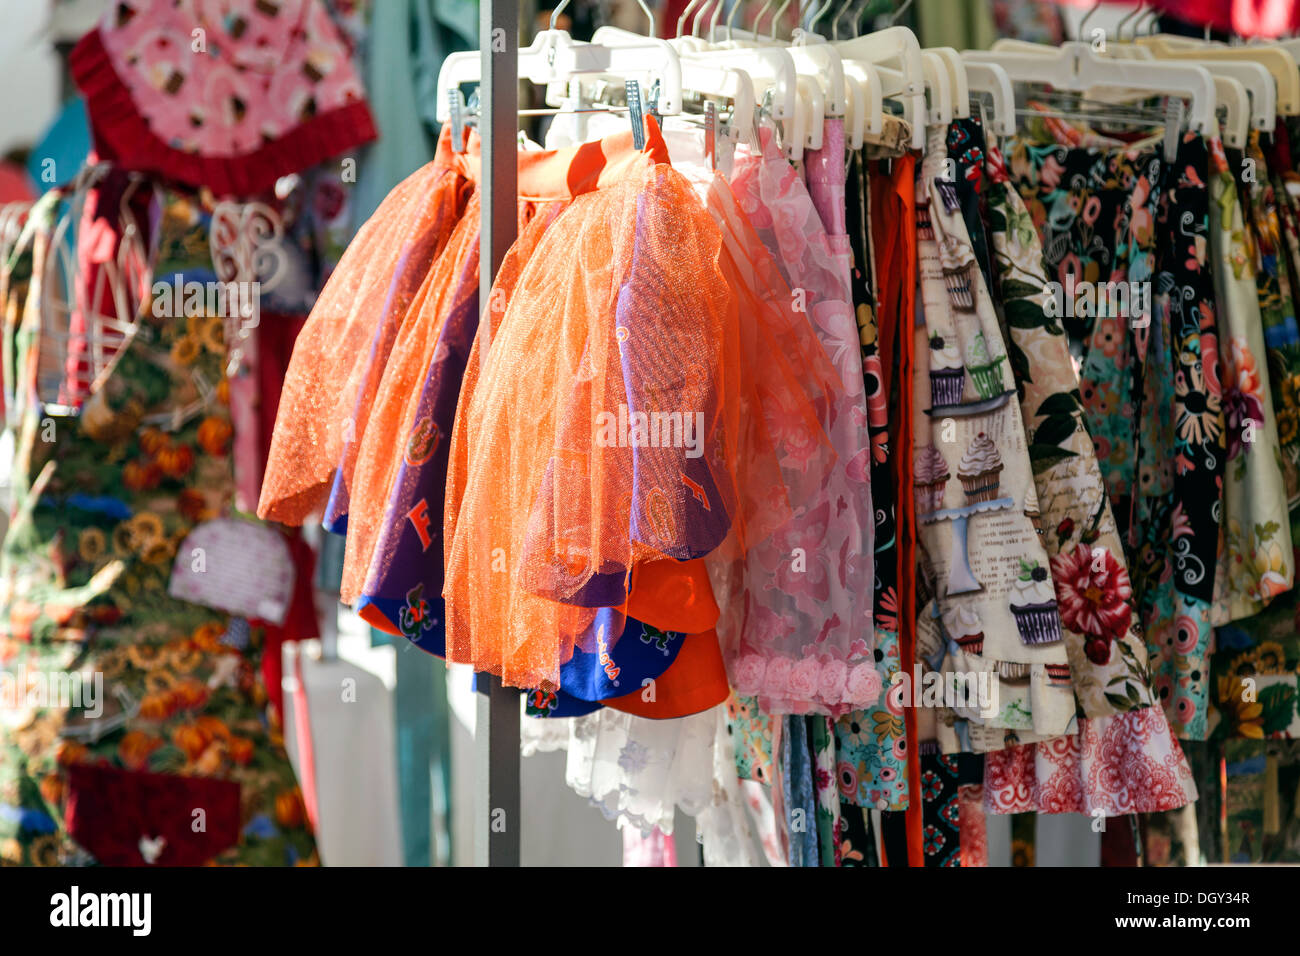 Colorful children's skirts, tutus and clothes for sale at the Mount Dora Crafts Fair Festival. - Stock Image